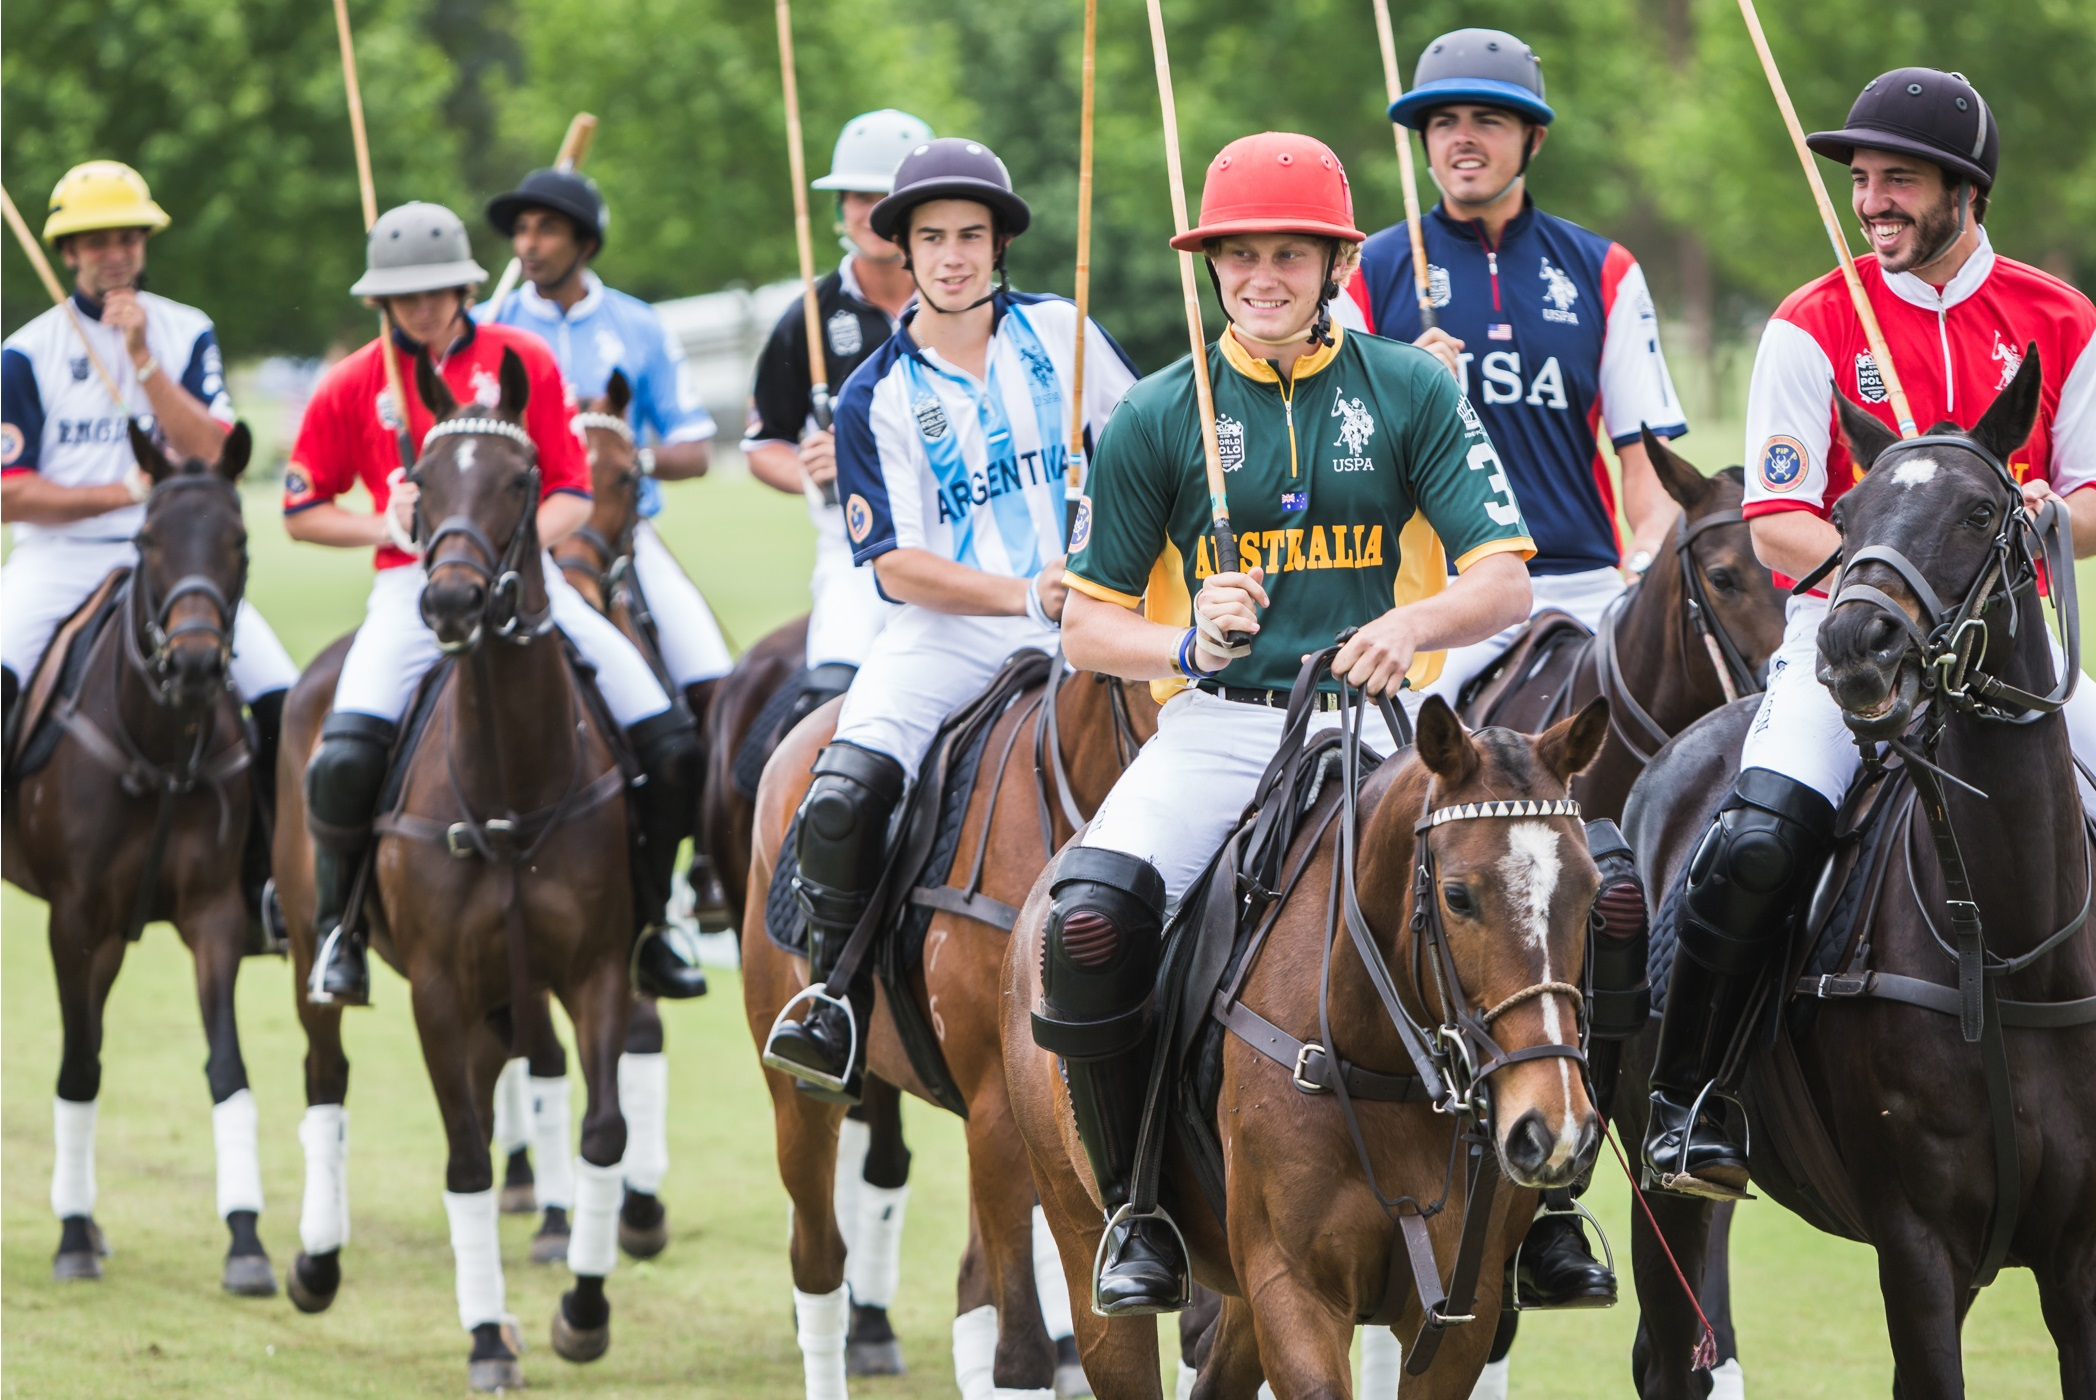 2017 WORLD POLO CHAMPONSHIP